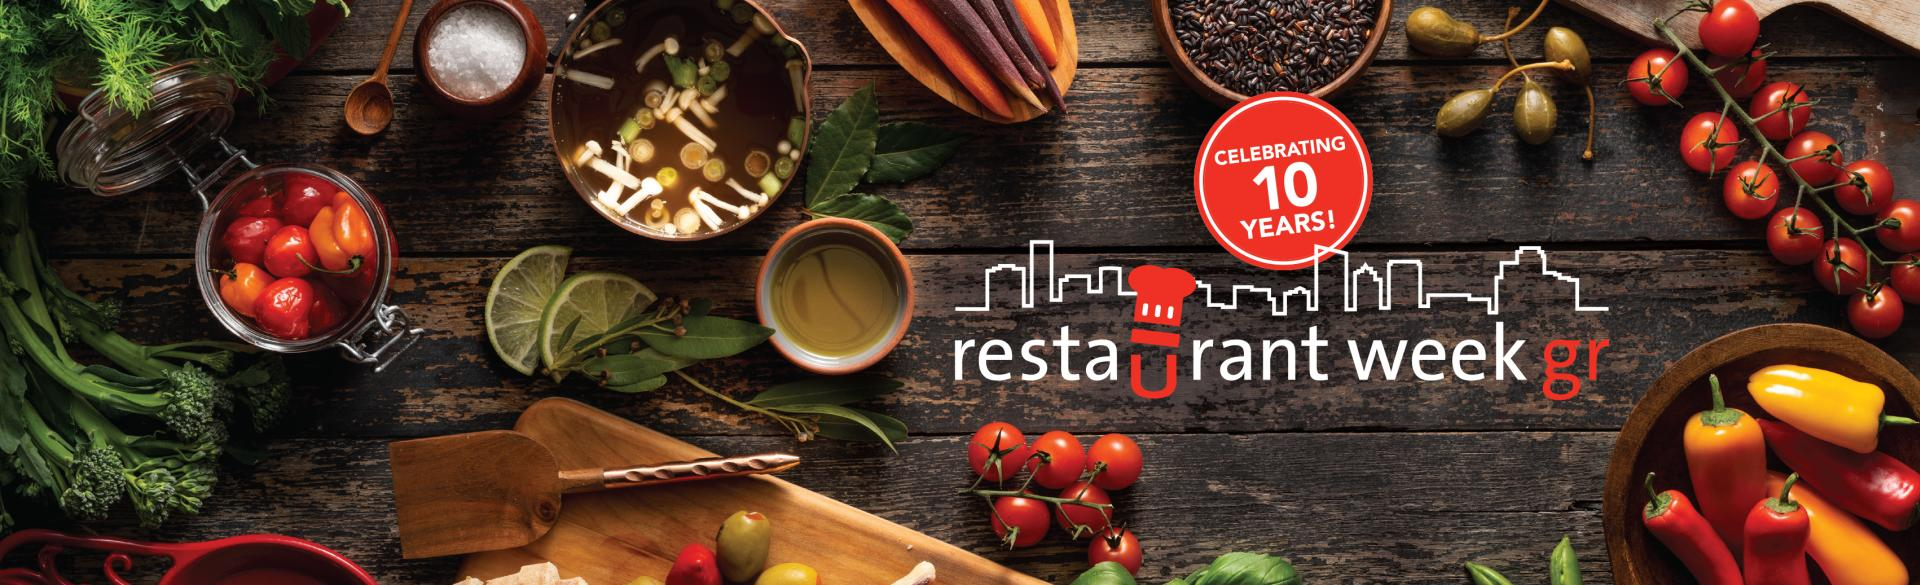 2019 Restaurant Week GR header